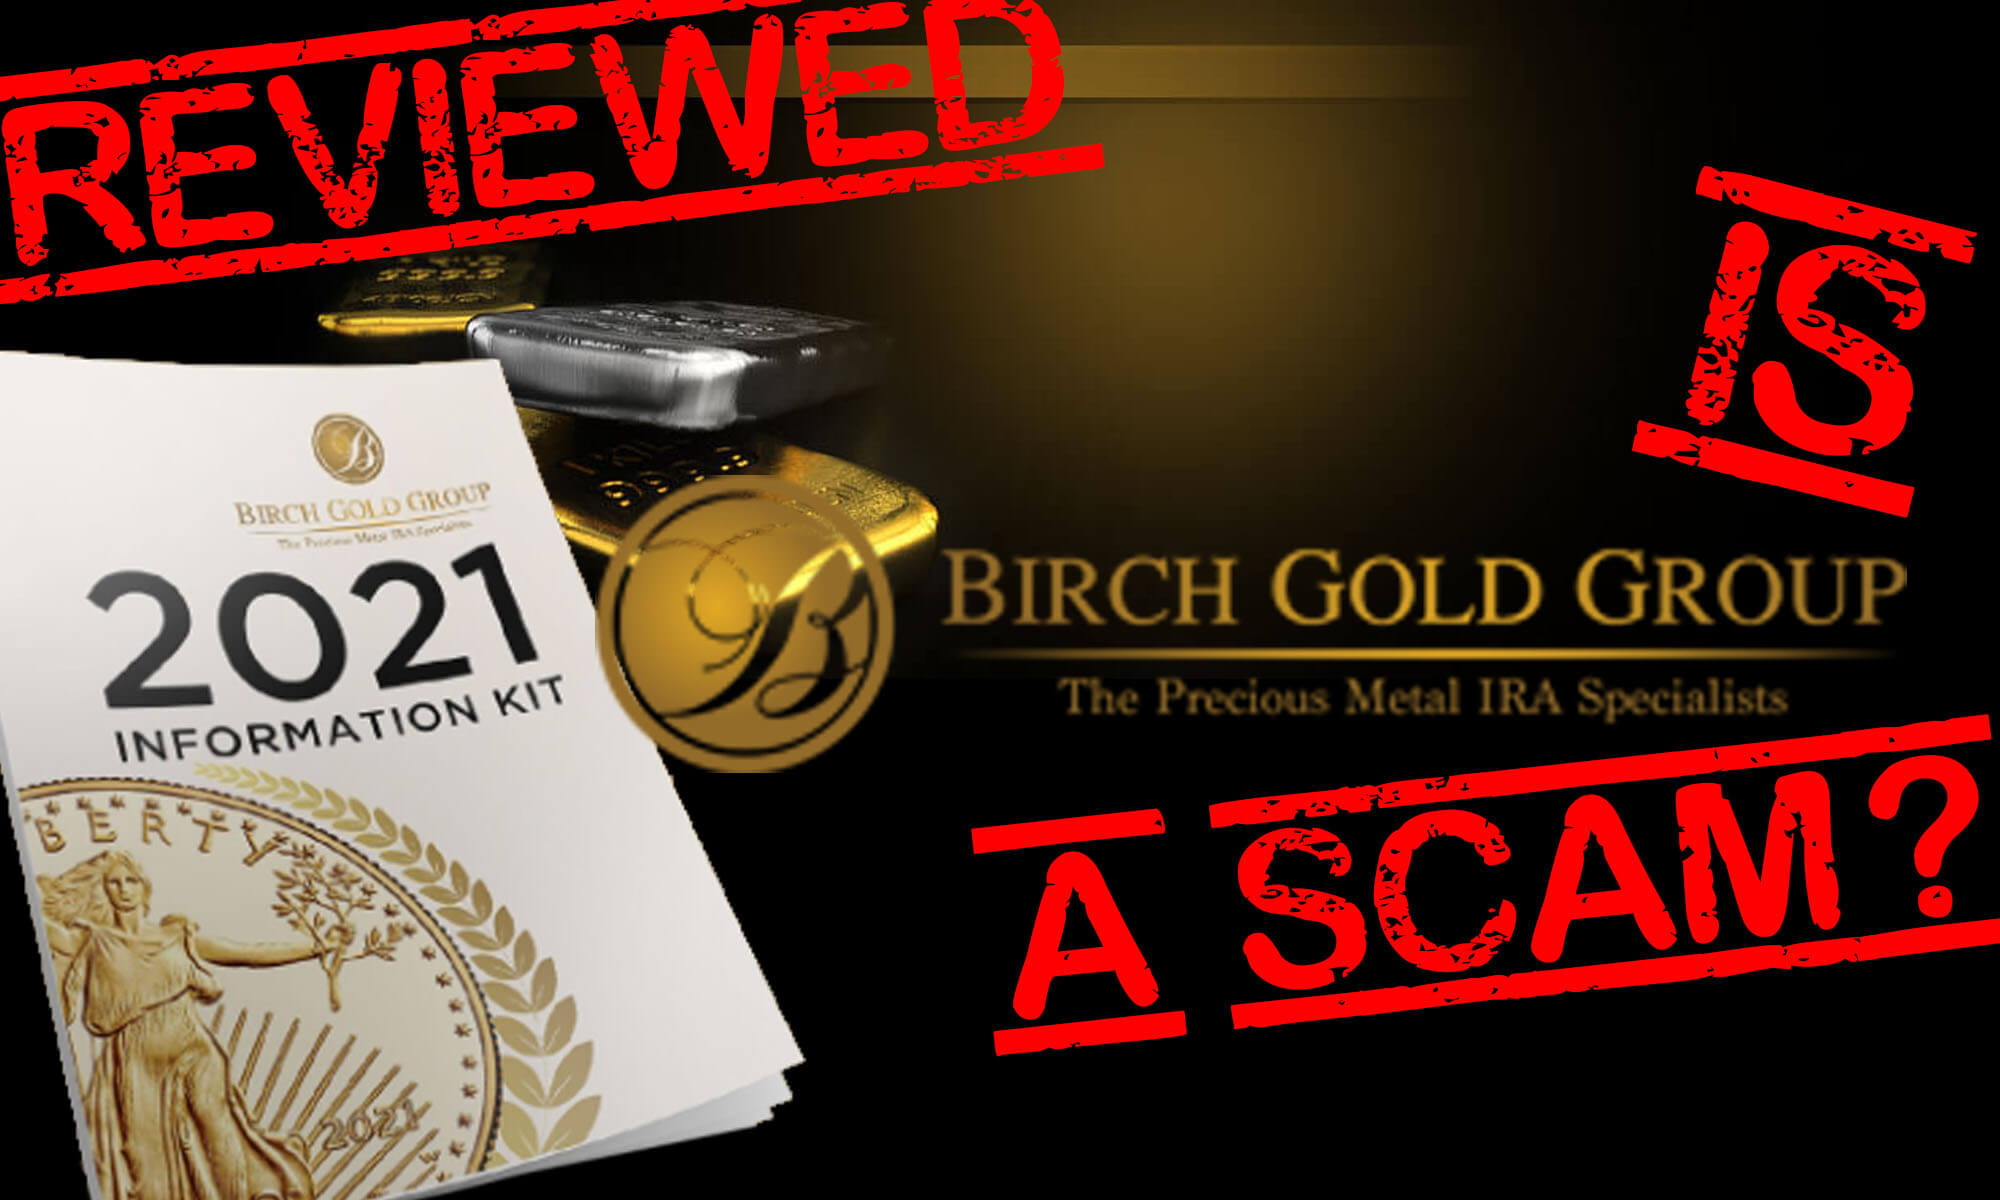 is birch gold group a scam?